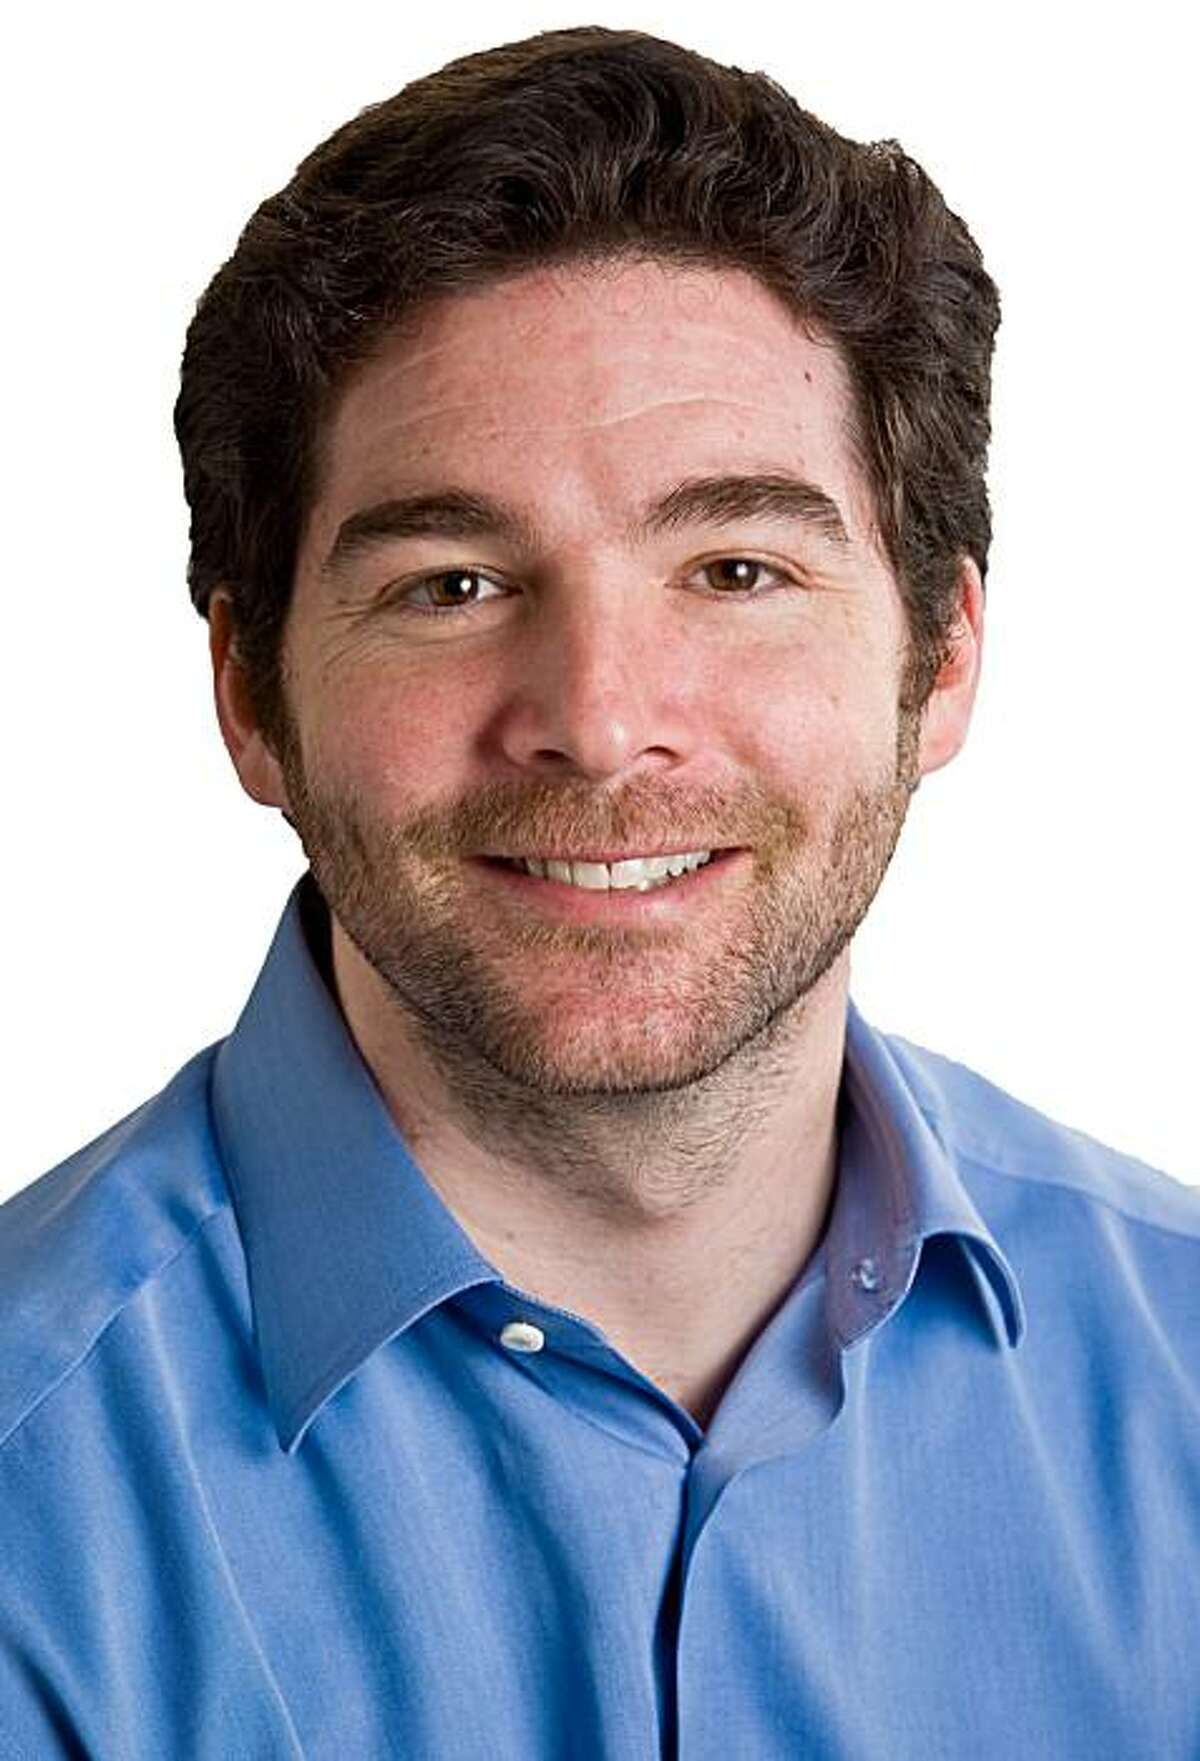 Jeff Weiner is Chief Executive Officer of LinkedIn. Prior to LinkedIn, Jeff was an Executive in Residence at Accel Partners and Greylock Partners where he focused primarily on advising the leadership teams of the firms' consumer technology portfolio companies while also working closely with the partners to evaluate new investment opportunities. Jeff previously served in key leadership roles at Yahoo! for over seven years. He was most recently the Executive Vice President of Yahoo!'s Network Division wherehe managed the company?s consumer web product portfolio, including Yahoo!'s Front Page, Mail, Search, and Media products. In addition to LinkedIn, Jeff serves on the Board of Directors for DonorsChoose.org and Malaria No More. He holds a B.S. in Econom